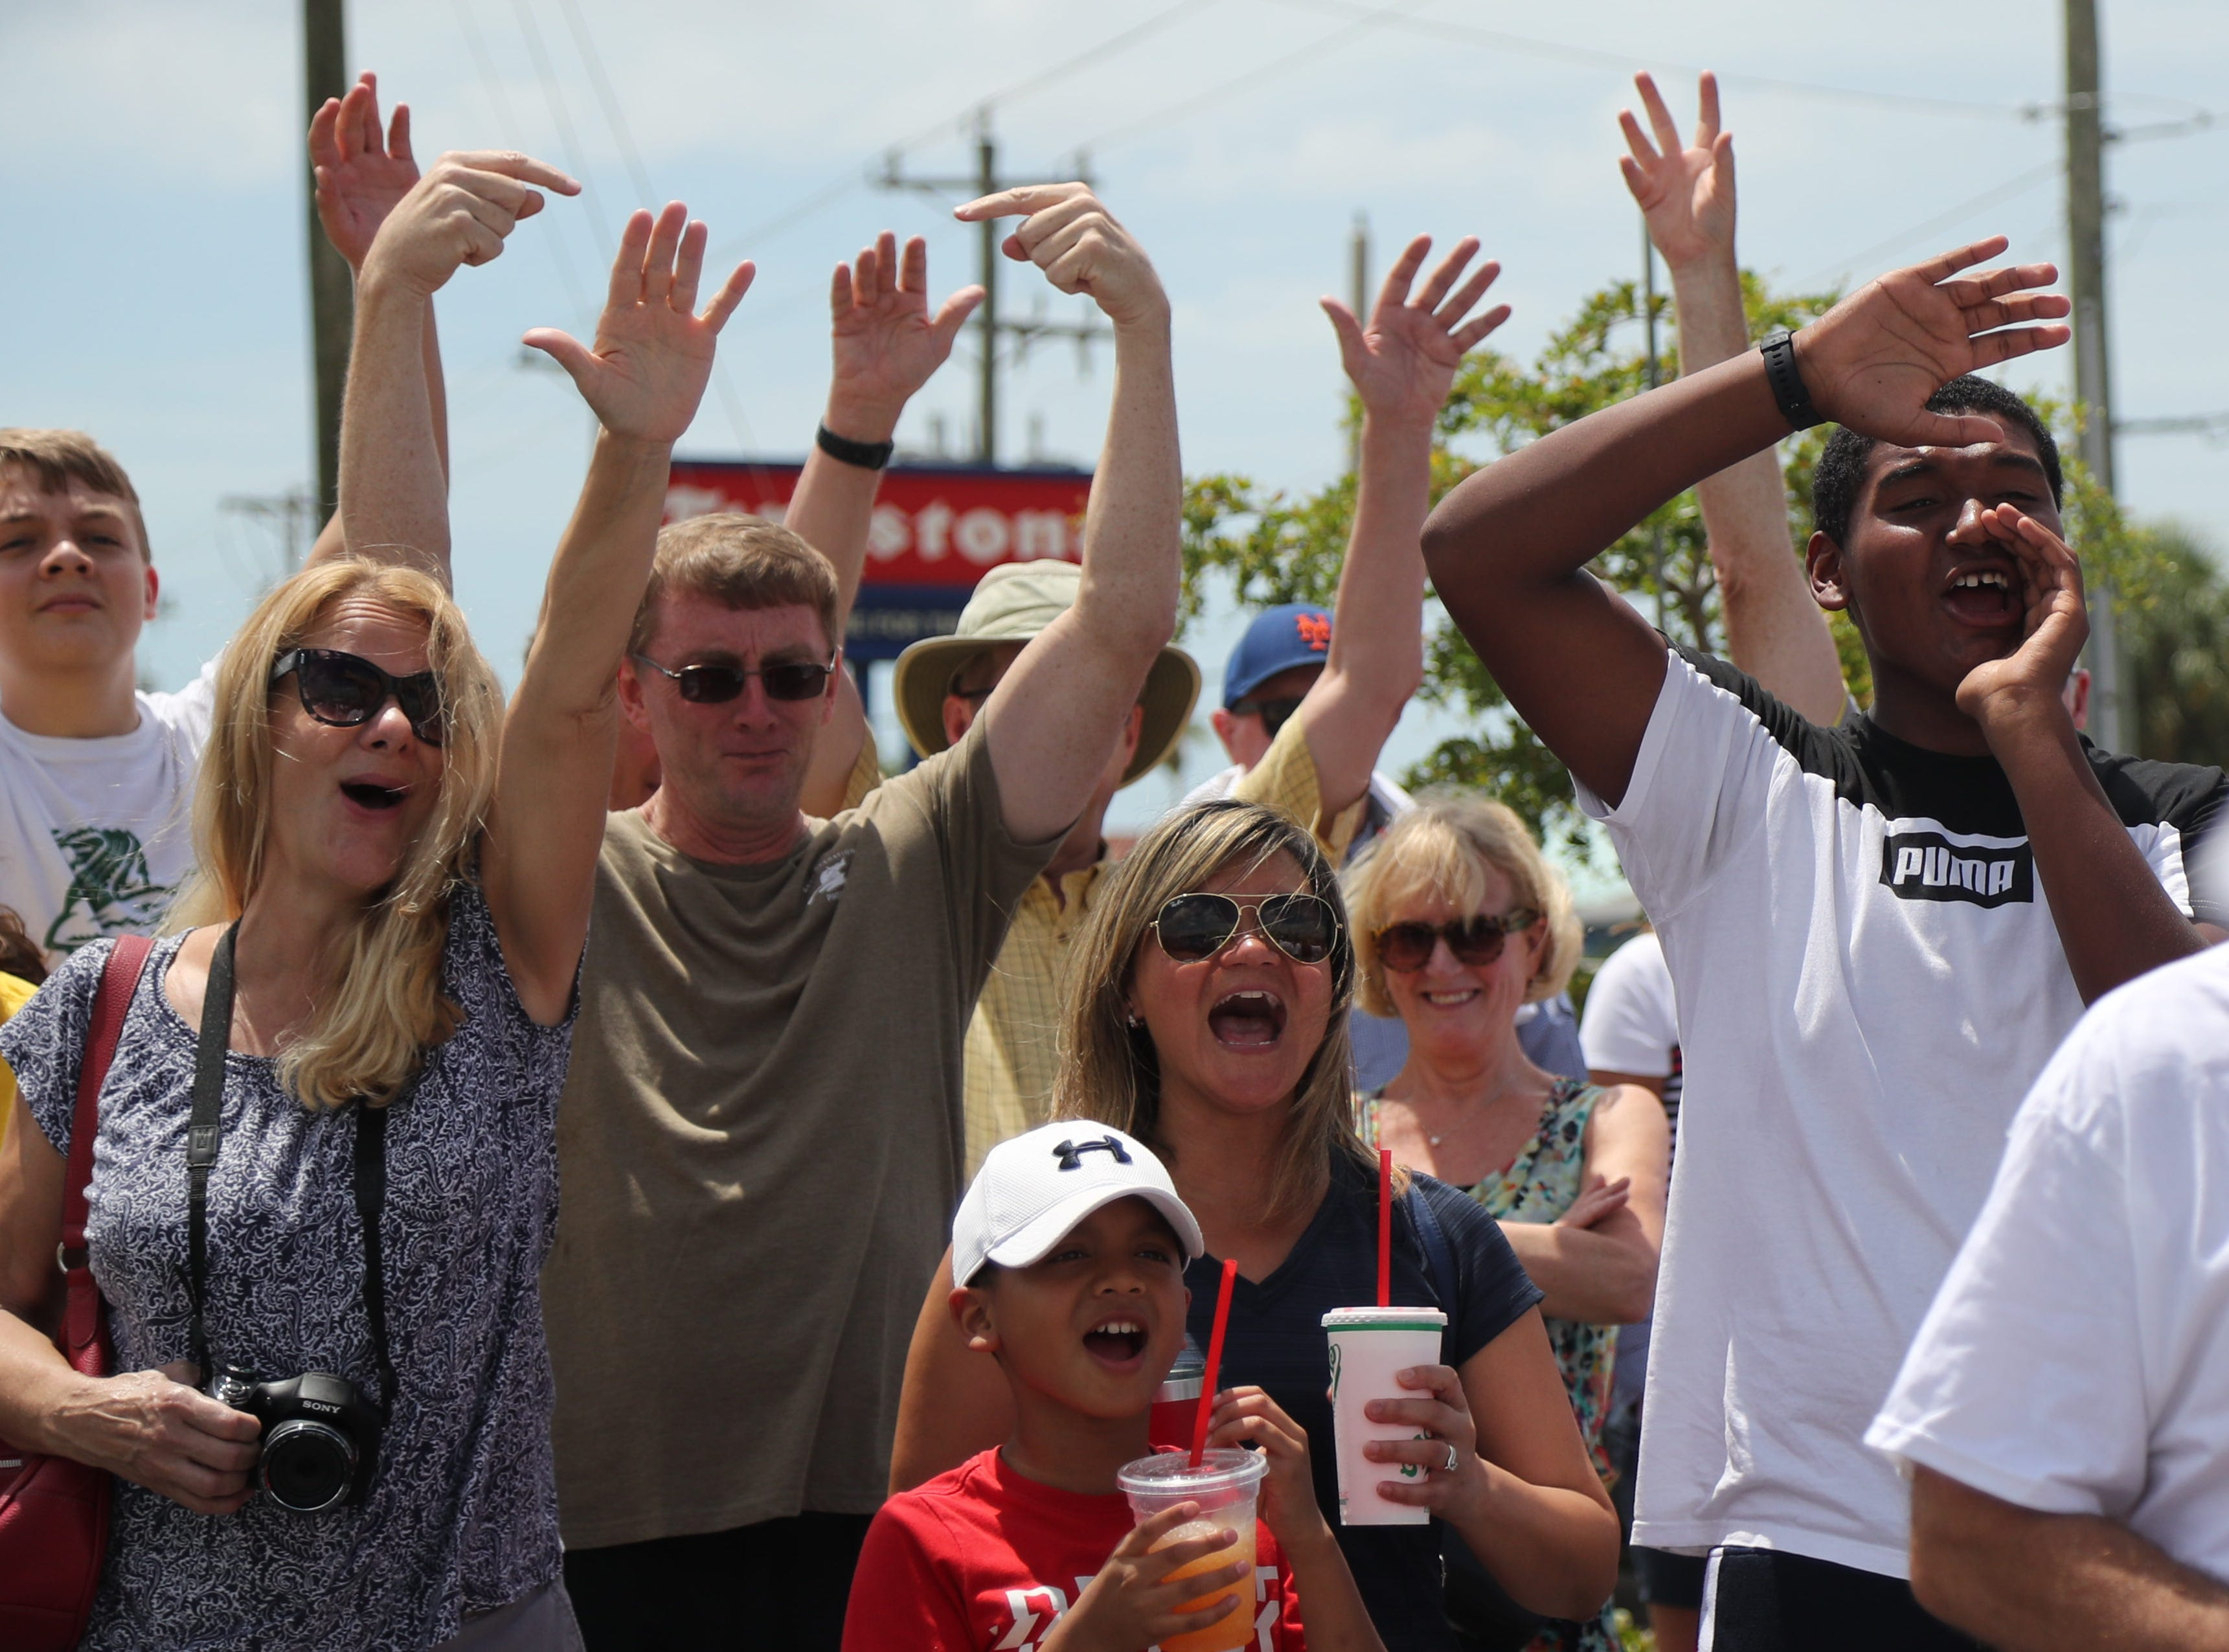 Audience members cheer at the Nathan's Famous Hot Dog Eating Contest on Saturday, April 13, 2019, in Cape Coral.